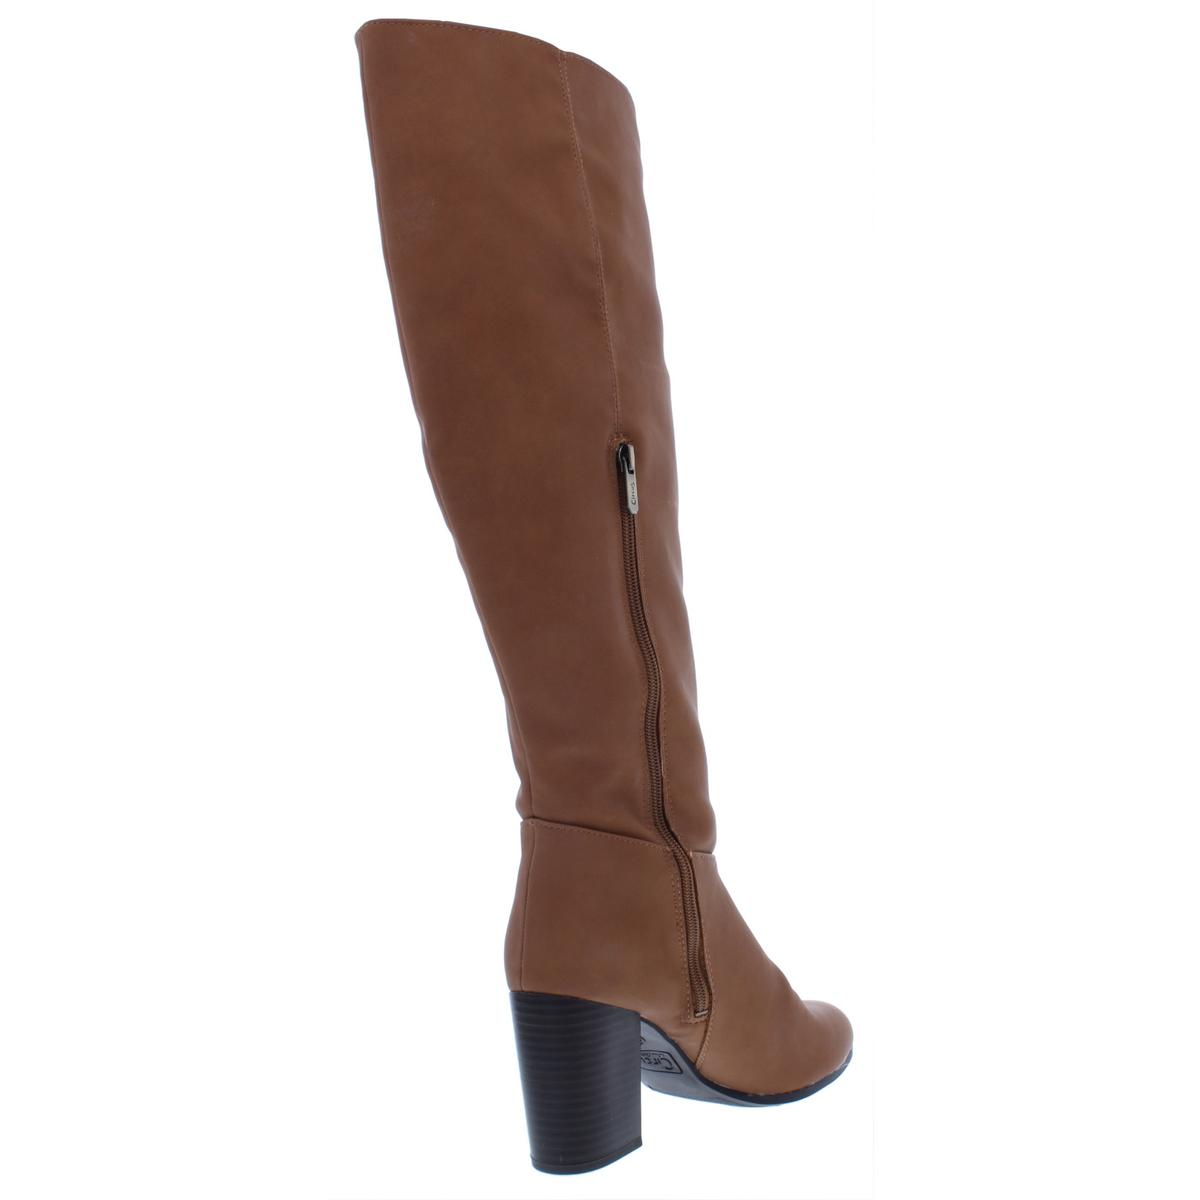 788a338acb364 ... Picture 2 of 3  Picture 3 of 3. Circus by Sam Edelman Womens Sibley  Brown Riding Boots 10 Medium ...